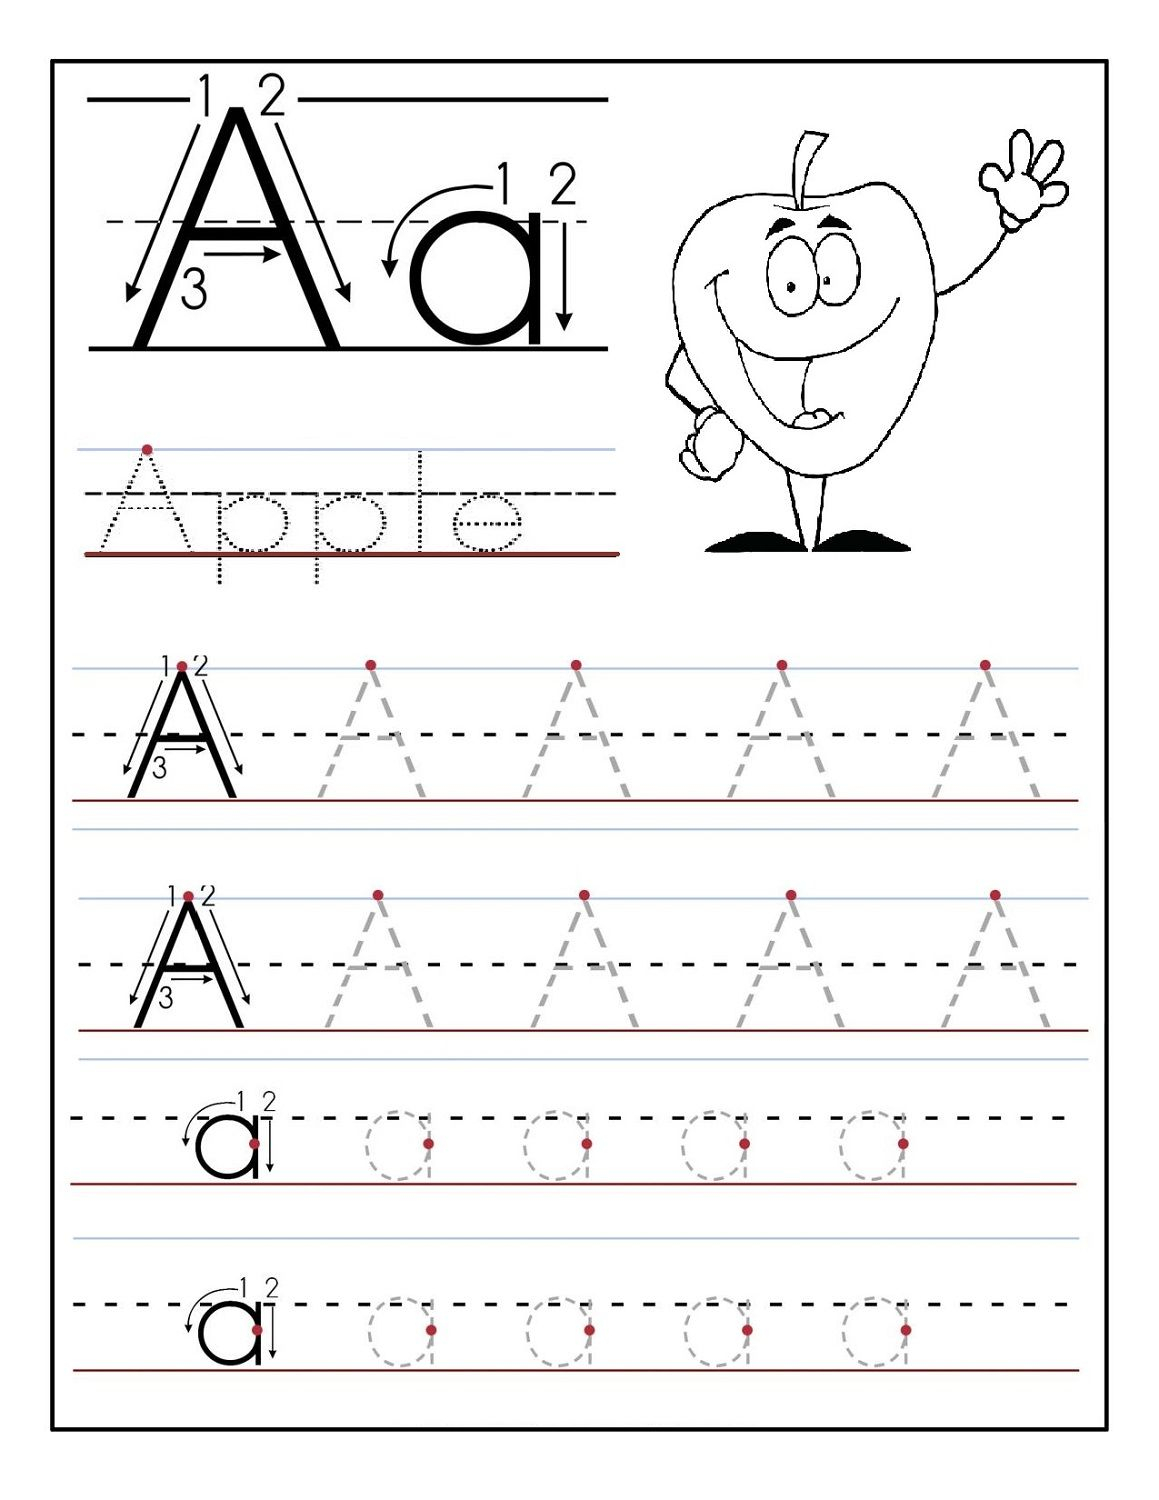 Trace Letter Sheets To Print Alphabet Worksheets Free within Letter A Worksheets For 3 Year Olds